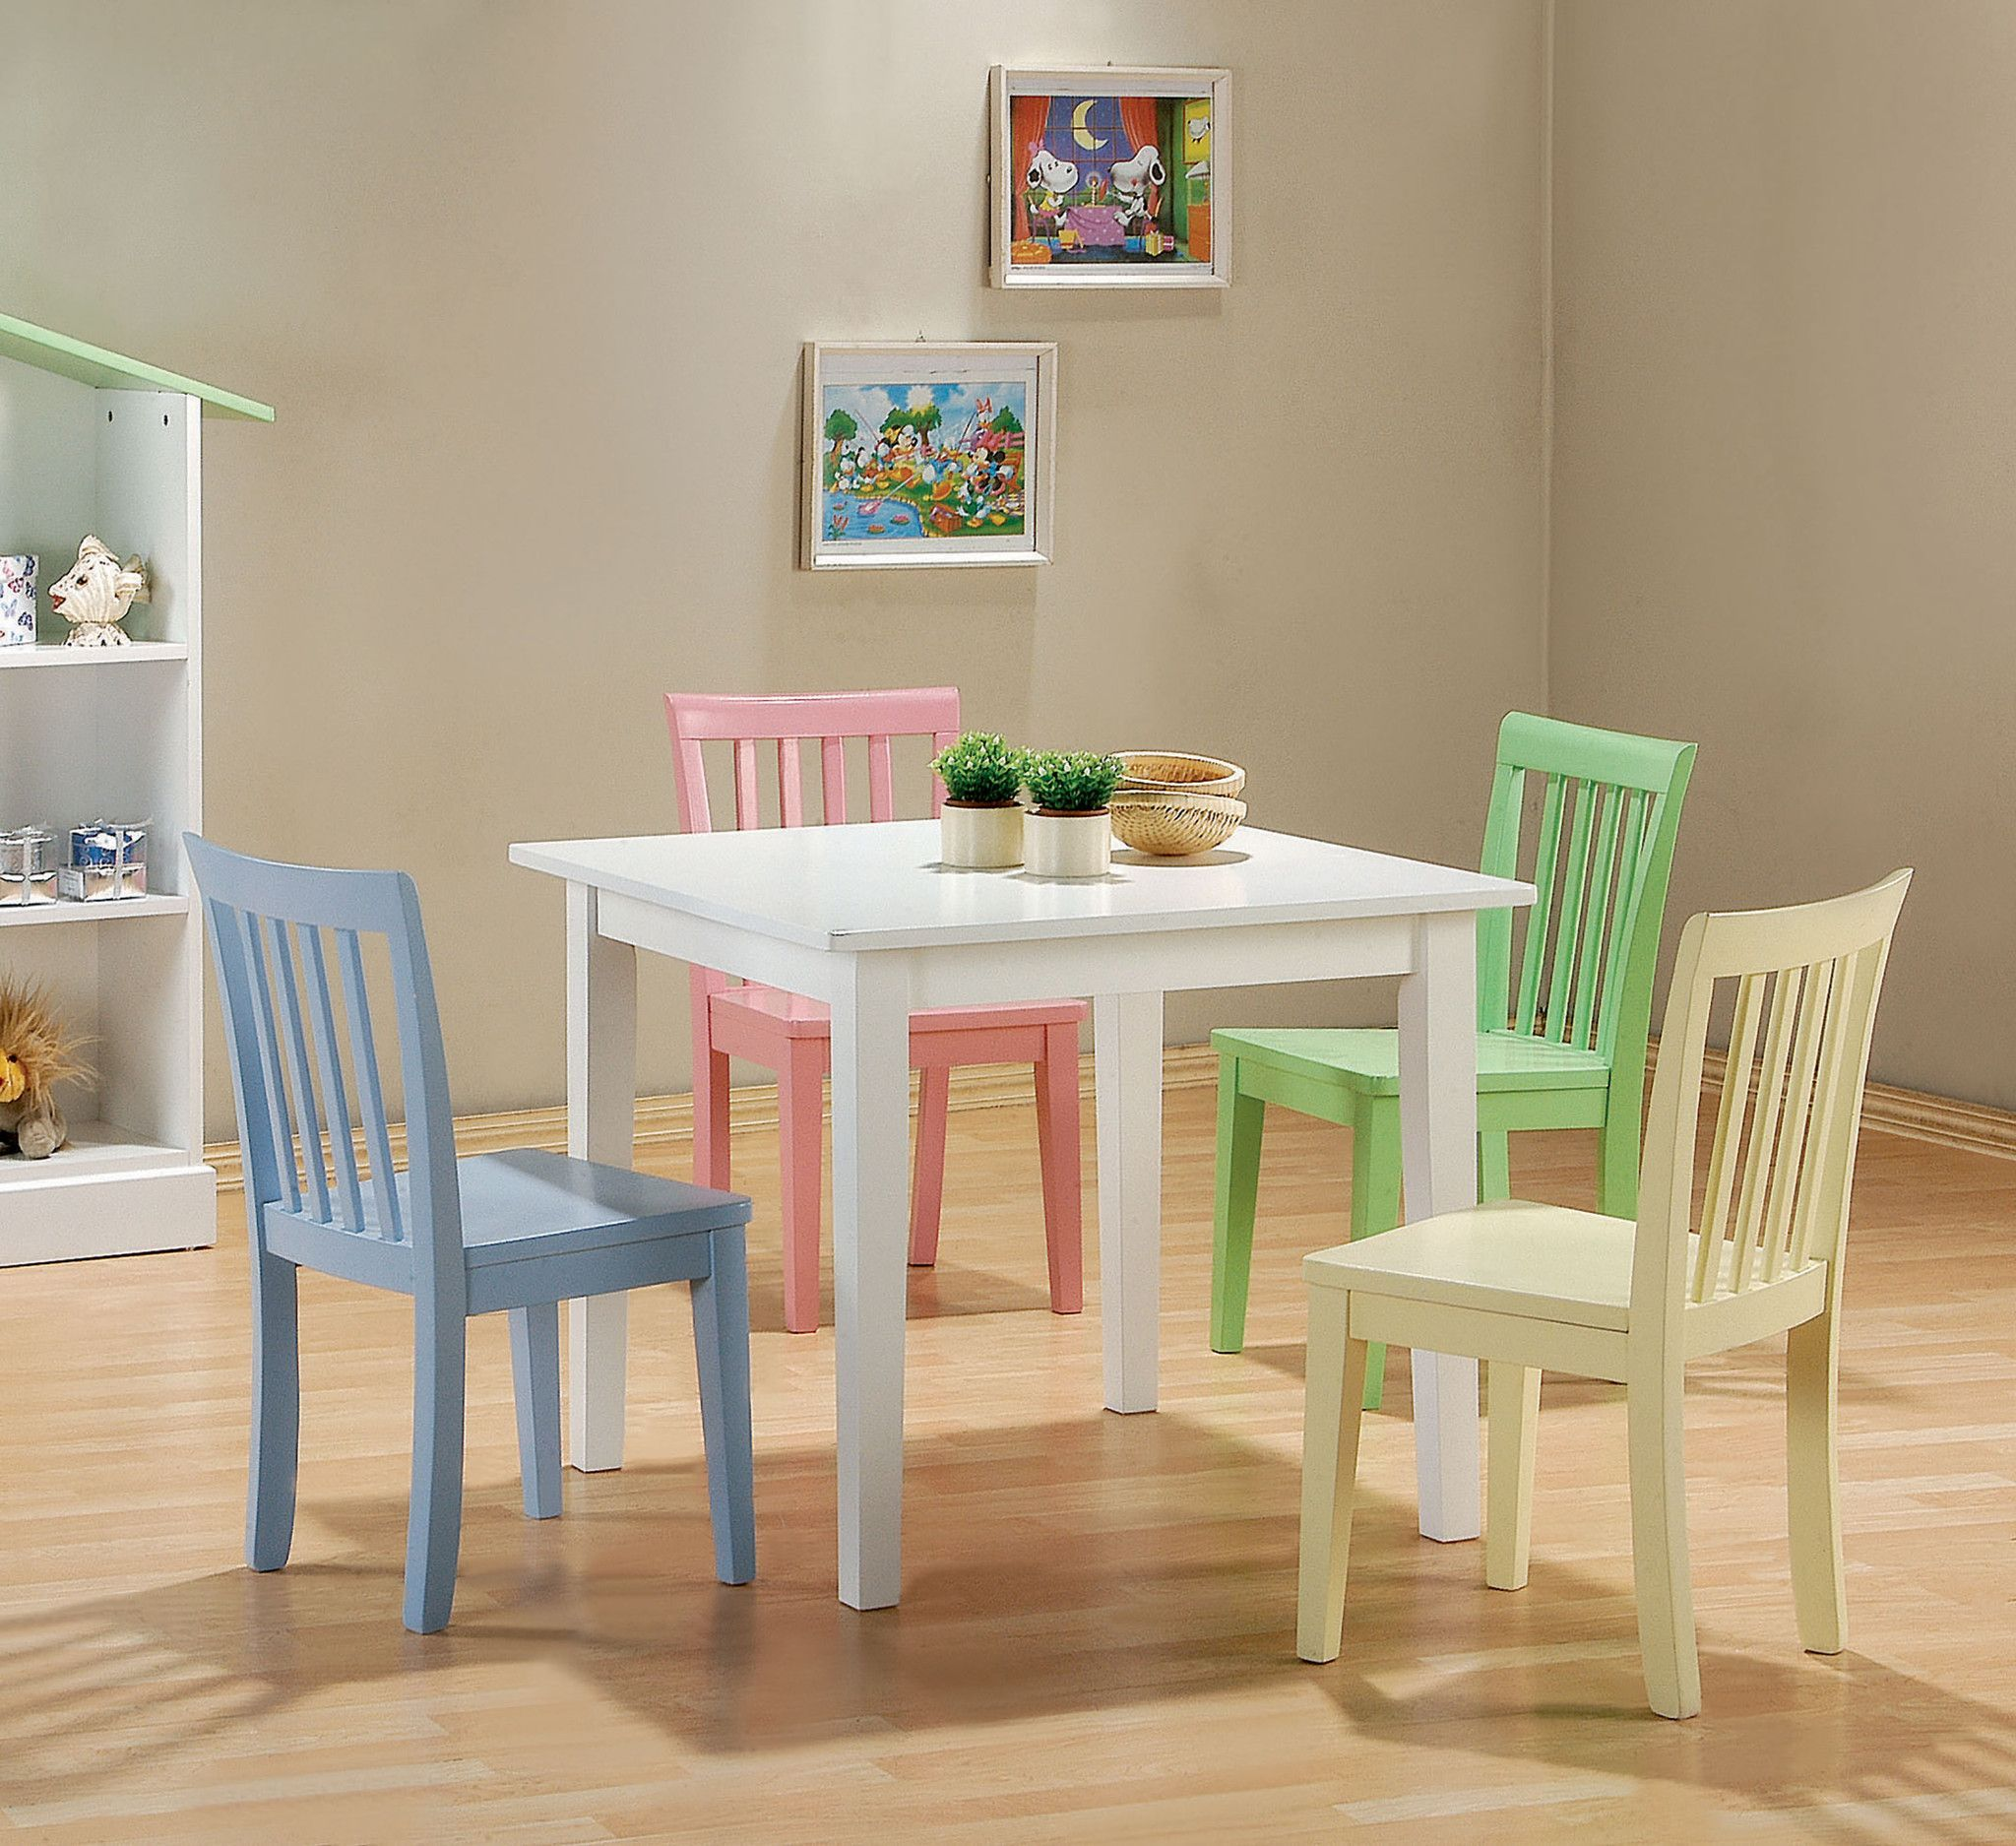 Coaster460235-table set | Products | Pinterest